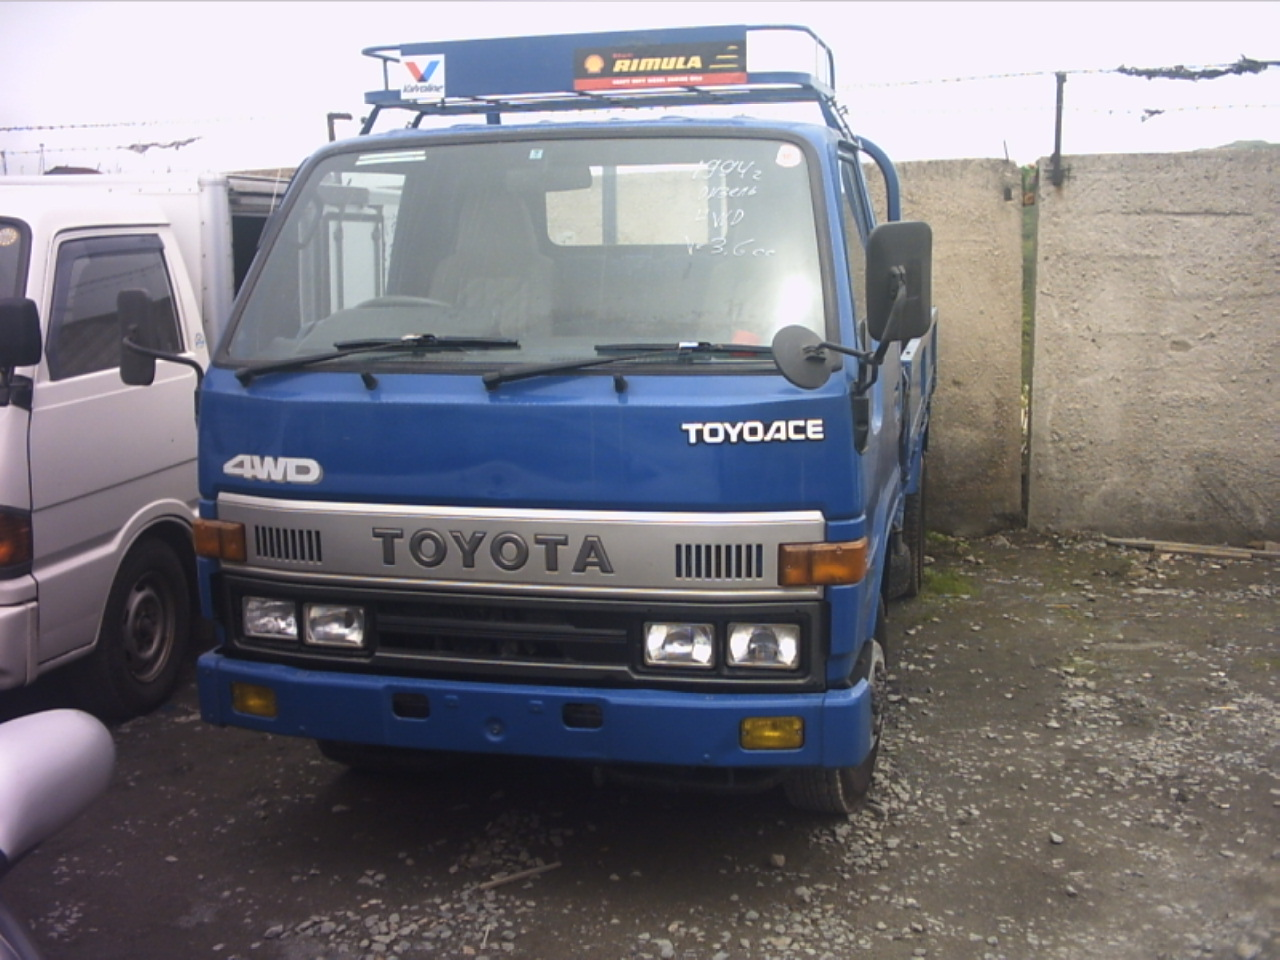 Toyota toyoace photo - 6